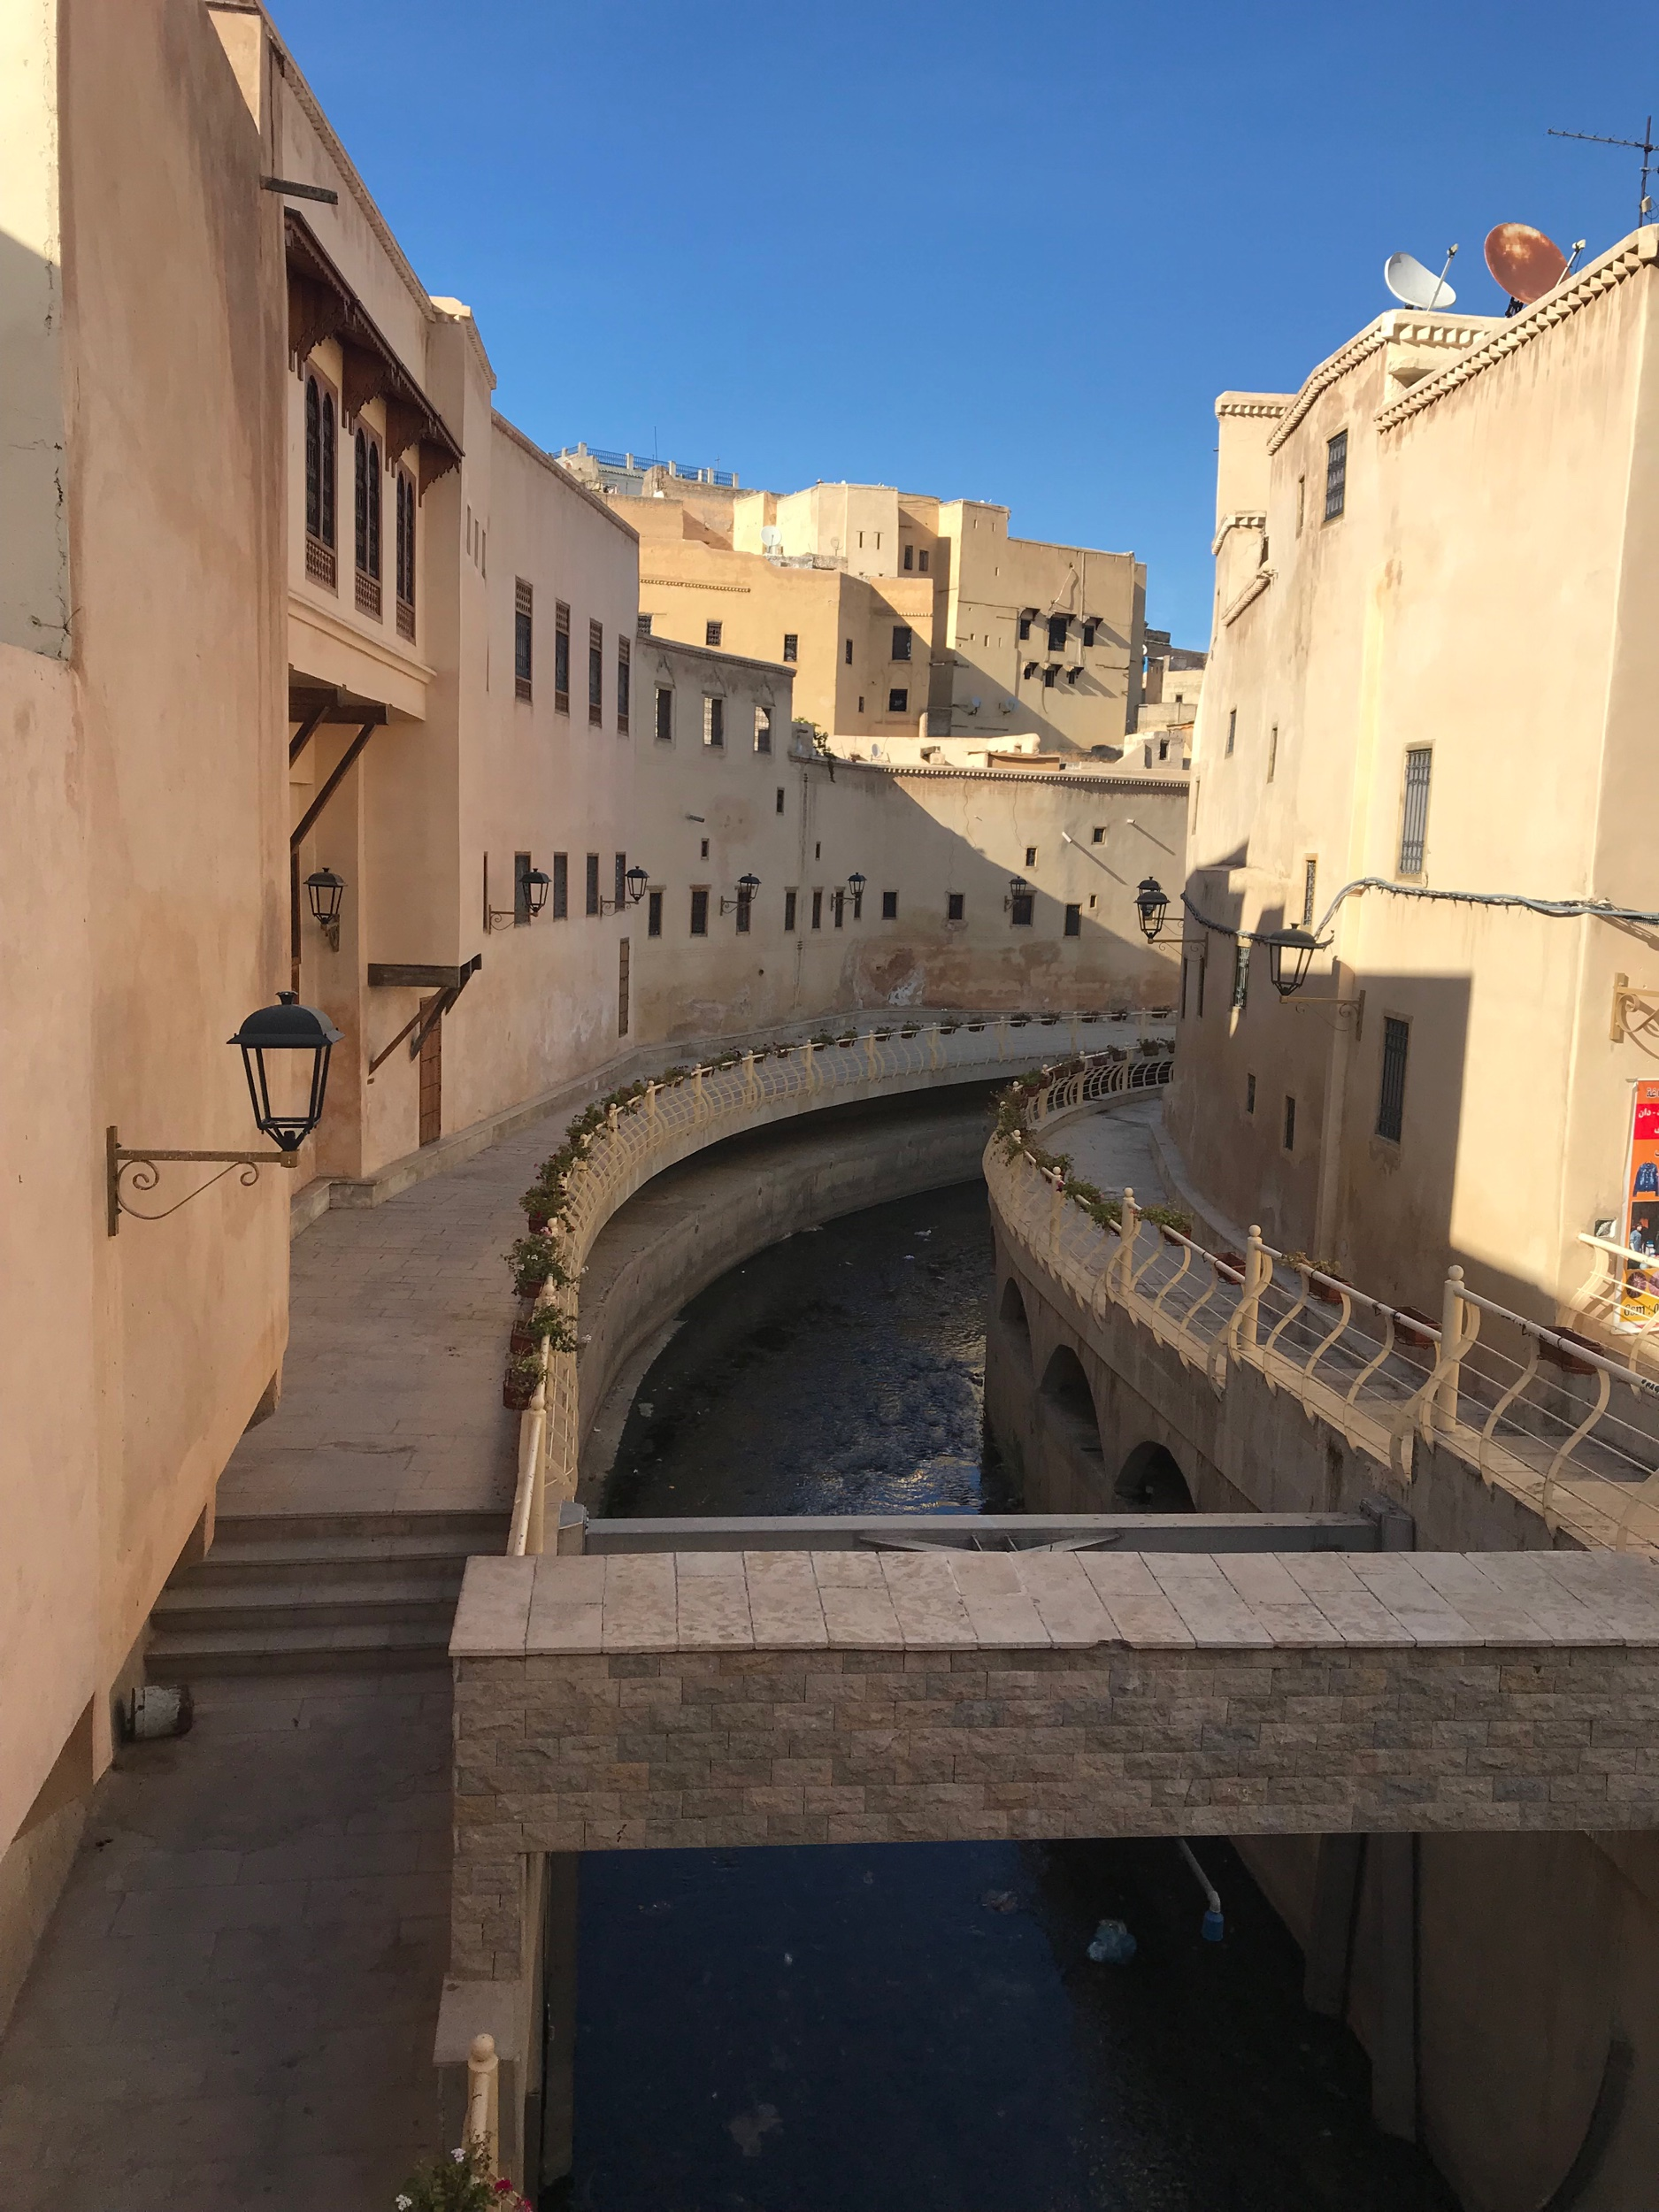 This watercourse runs right through the middle of the medina, it was relatively clean too.